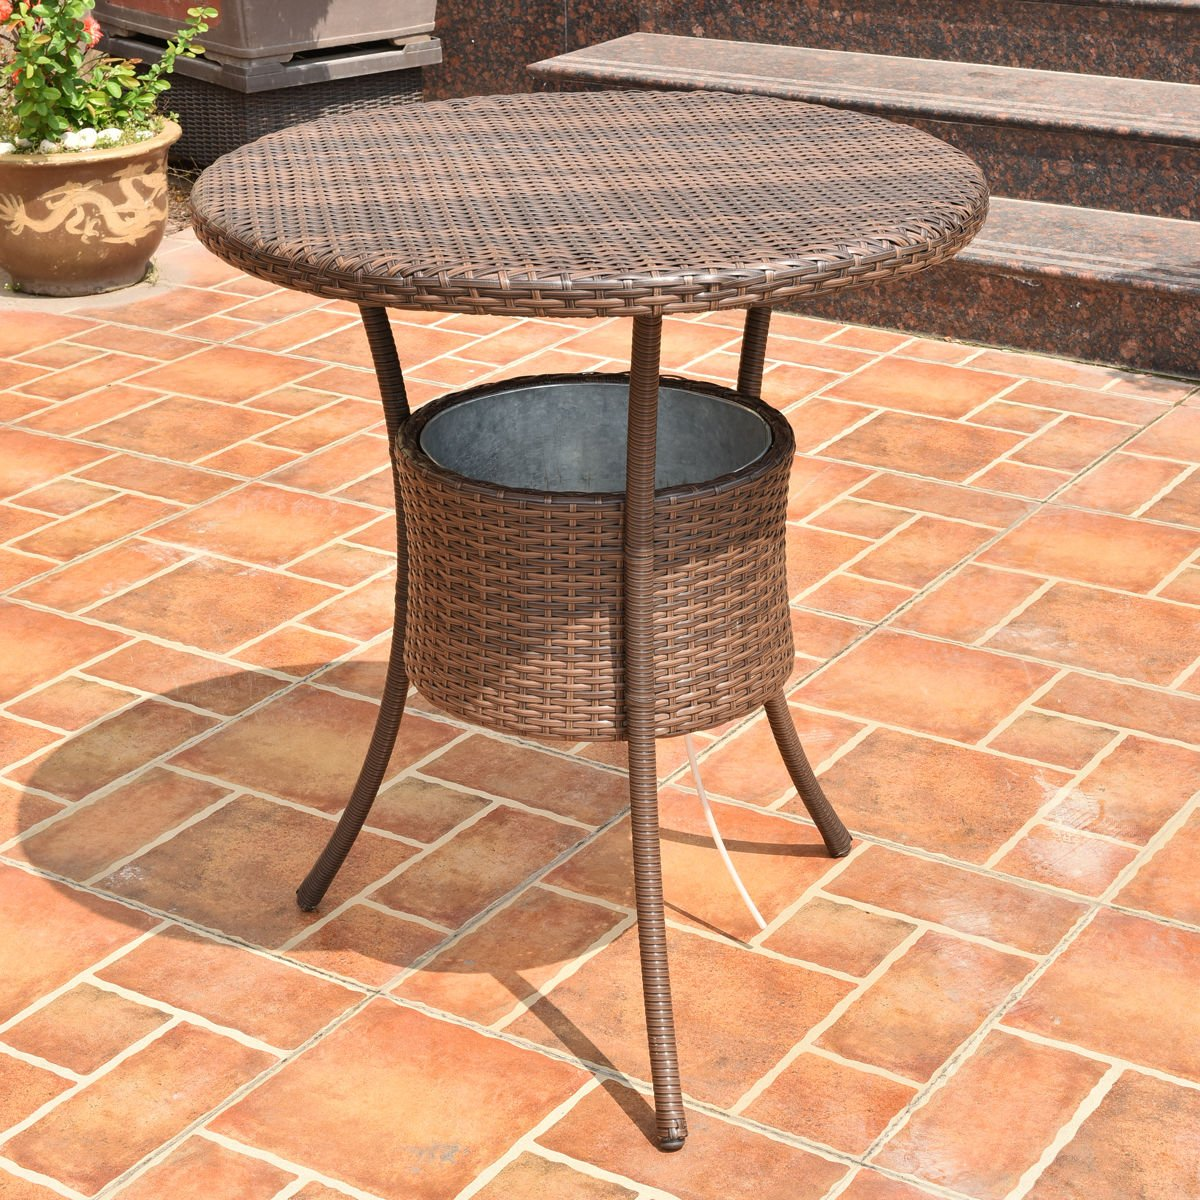 """31.5"""" Outdoor Rattan Patio Bar Table with Ice Cooler Bucket for your Drinks or Any Beverages, Weather Resistant, High Temperature Tolerant and UV Resistant"""